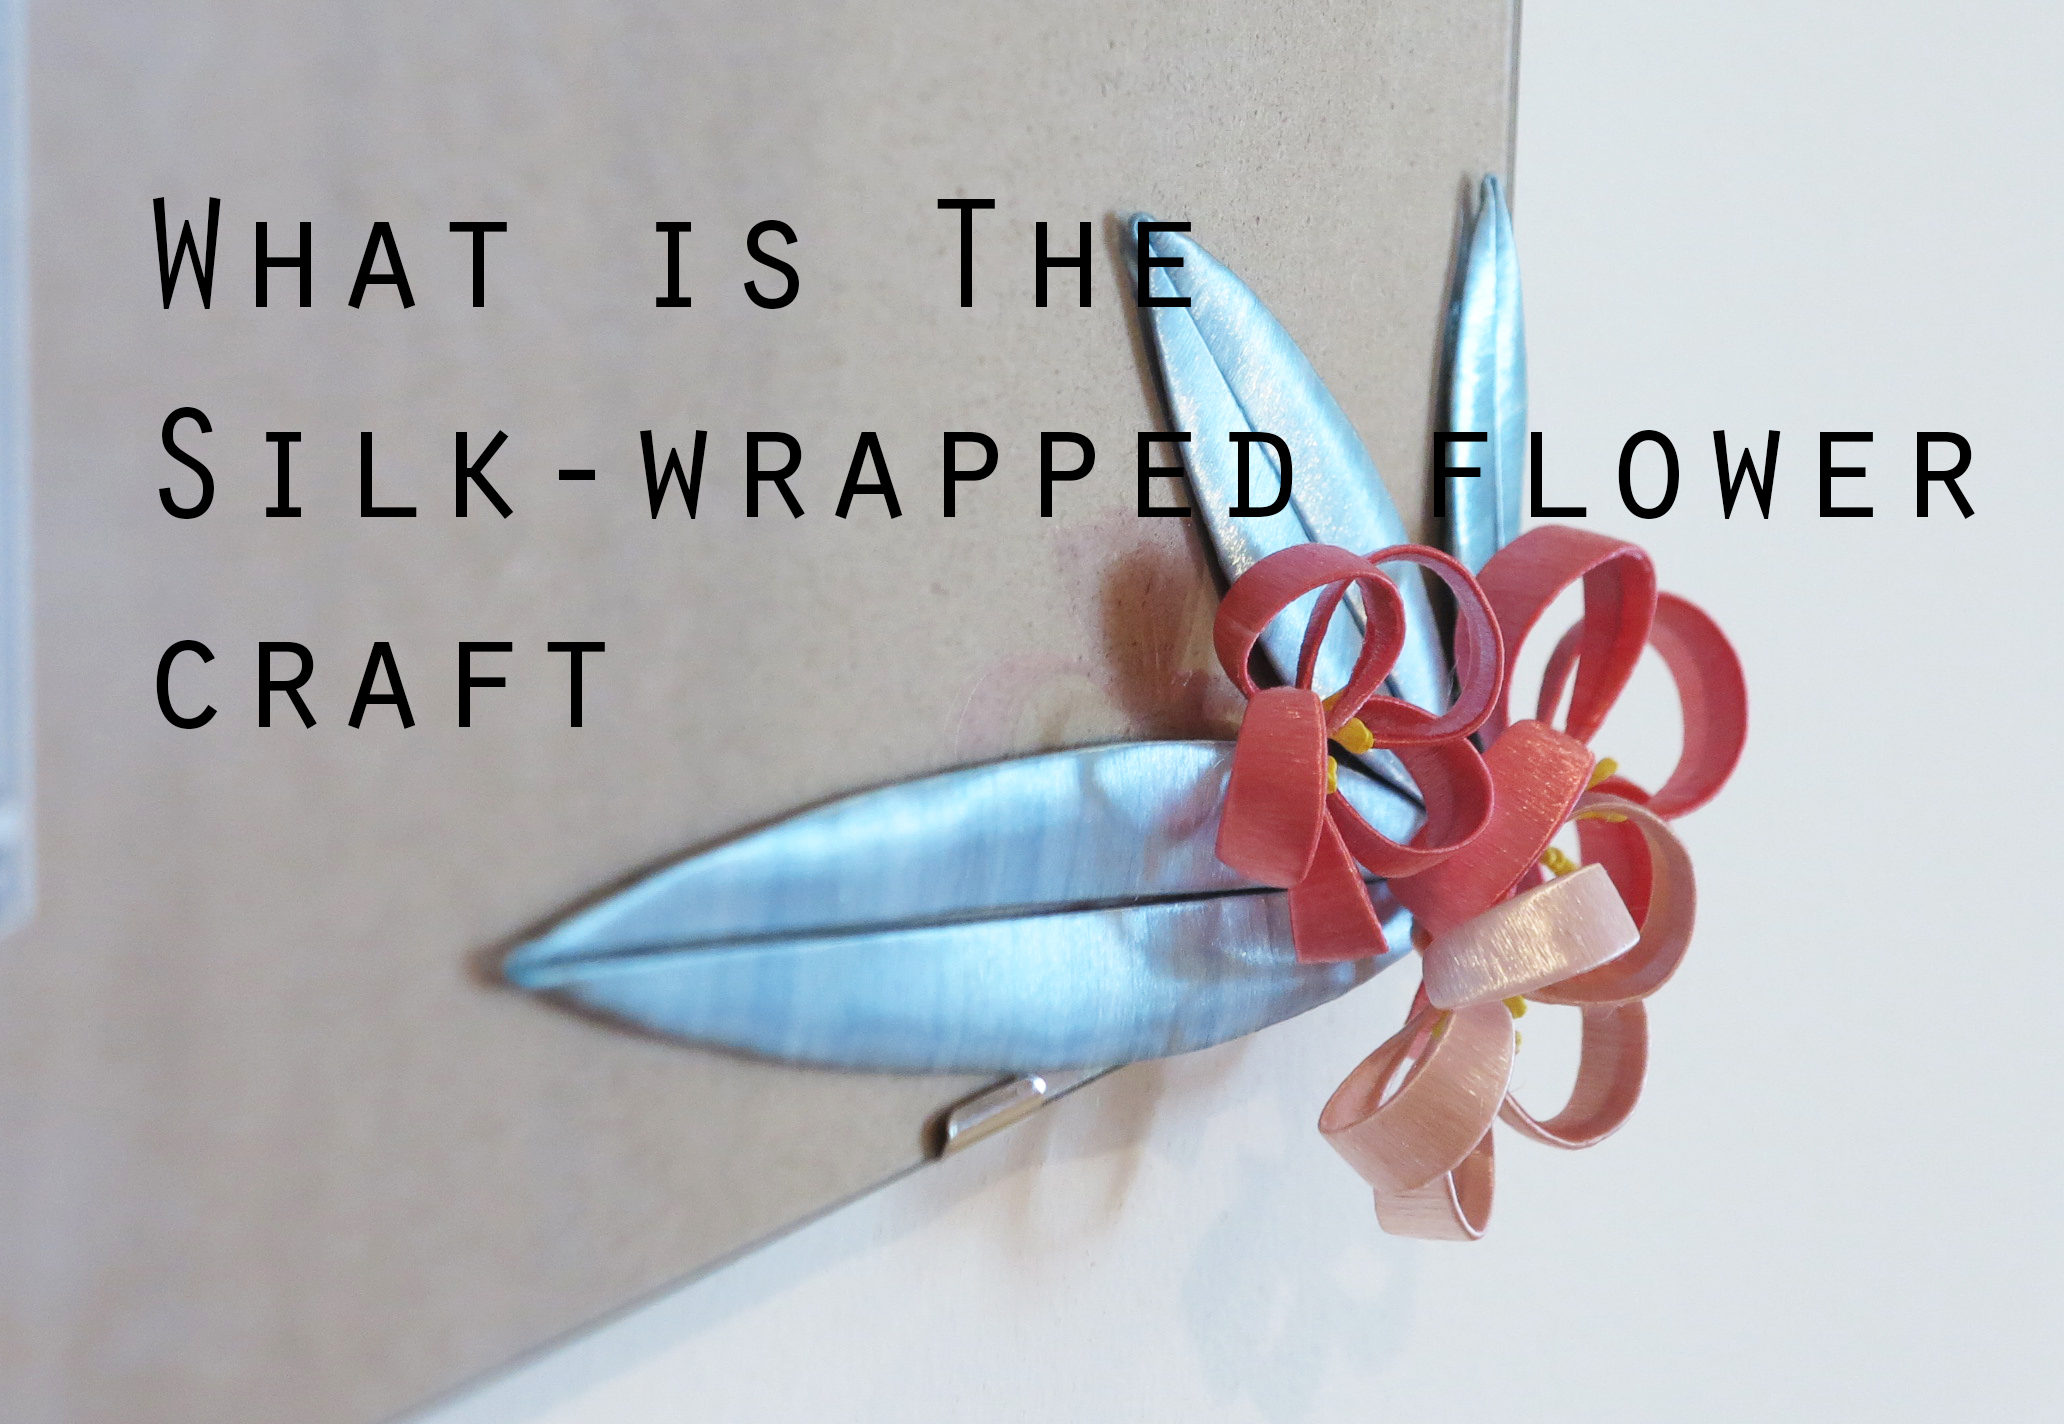 What is the silk-wrapped flower craft